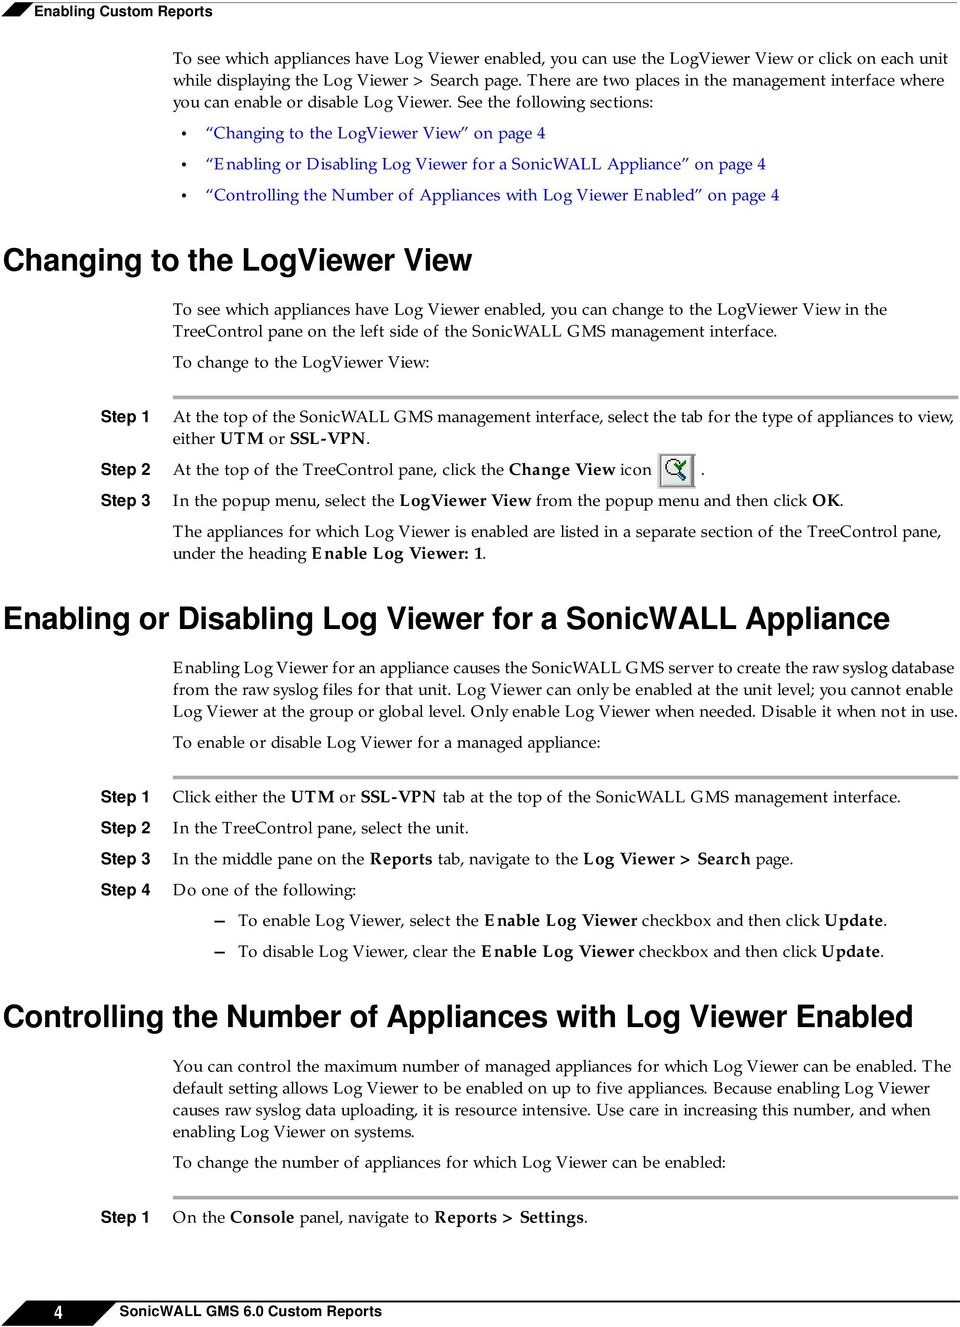 See the following sections: Changing to the LogViewer View on page 4 Enabling or Disabling Log Viewer for a SonicWALL Appliance on page 4 Controlling the Number of Appliances with Log Viewer Enabled